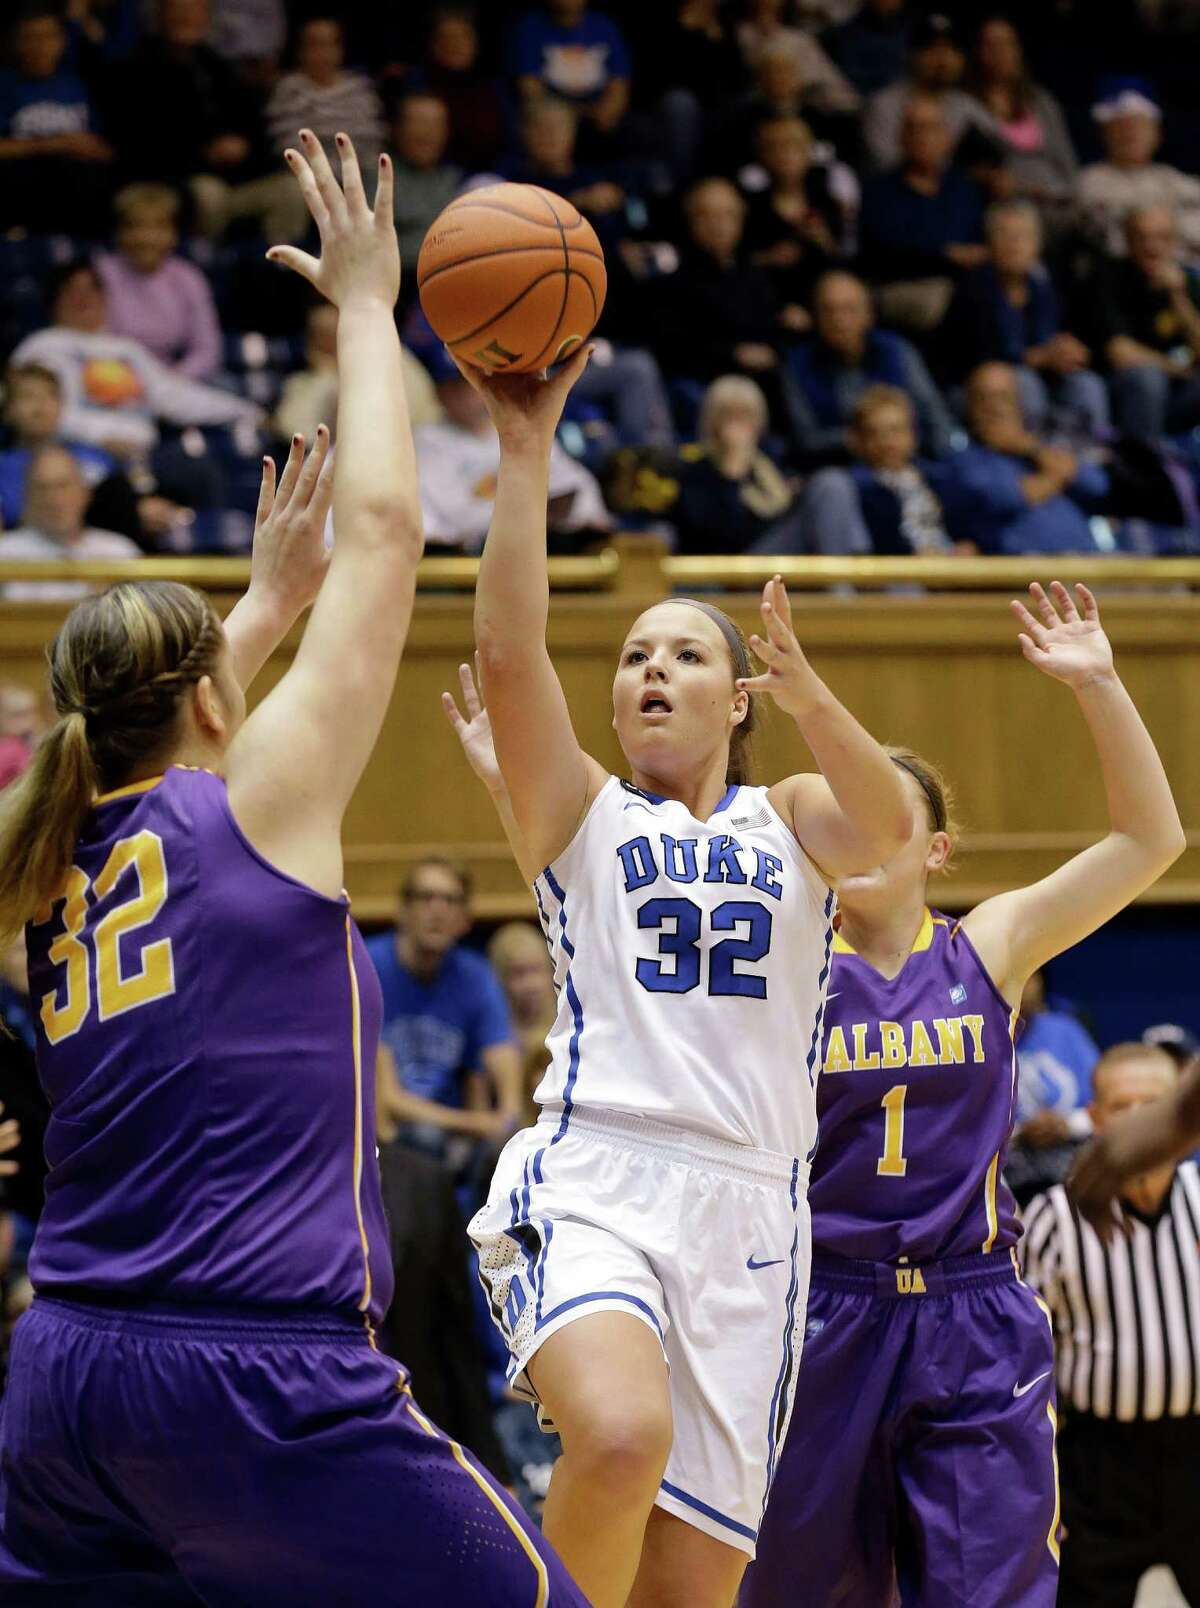 Duke's Tricia Liston (32) shoots as Albany's Megan Craig (32) and Erin Coughlin (1) defend during the first half of an NCAA college basketball game in Durham, N.C., Thursday, Dec. 19, 2013. (AP Photo/Gerry Broome) ORG XMIT: NCGB102